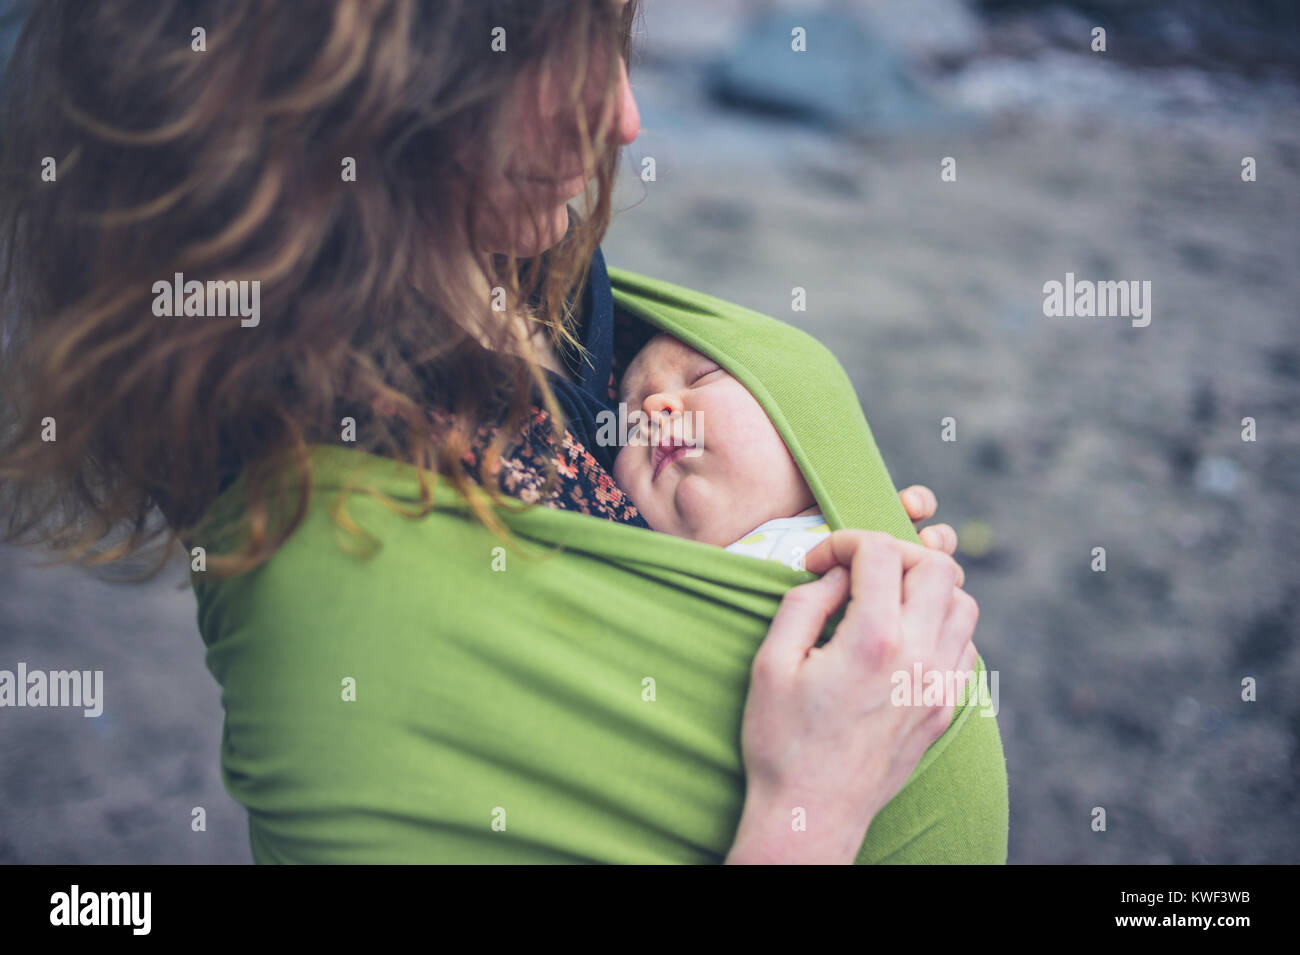 A young woman on the beach with her baby in a sling - Stock Image